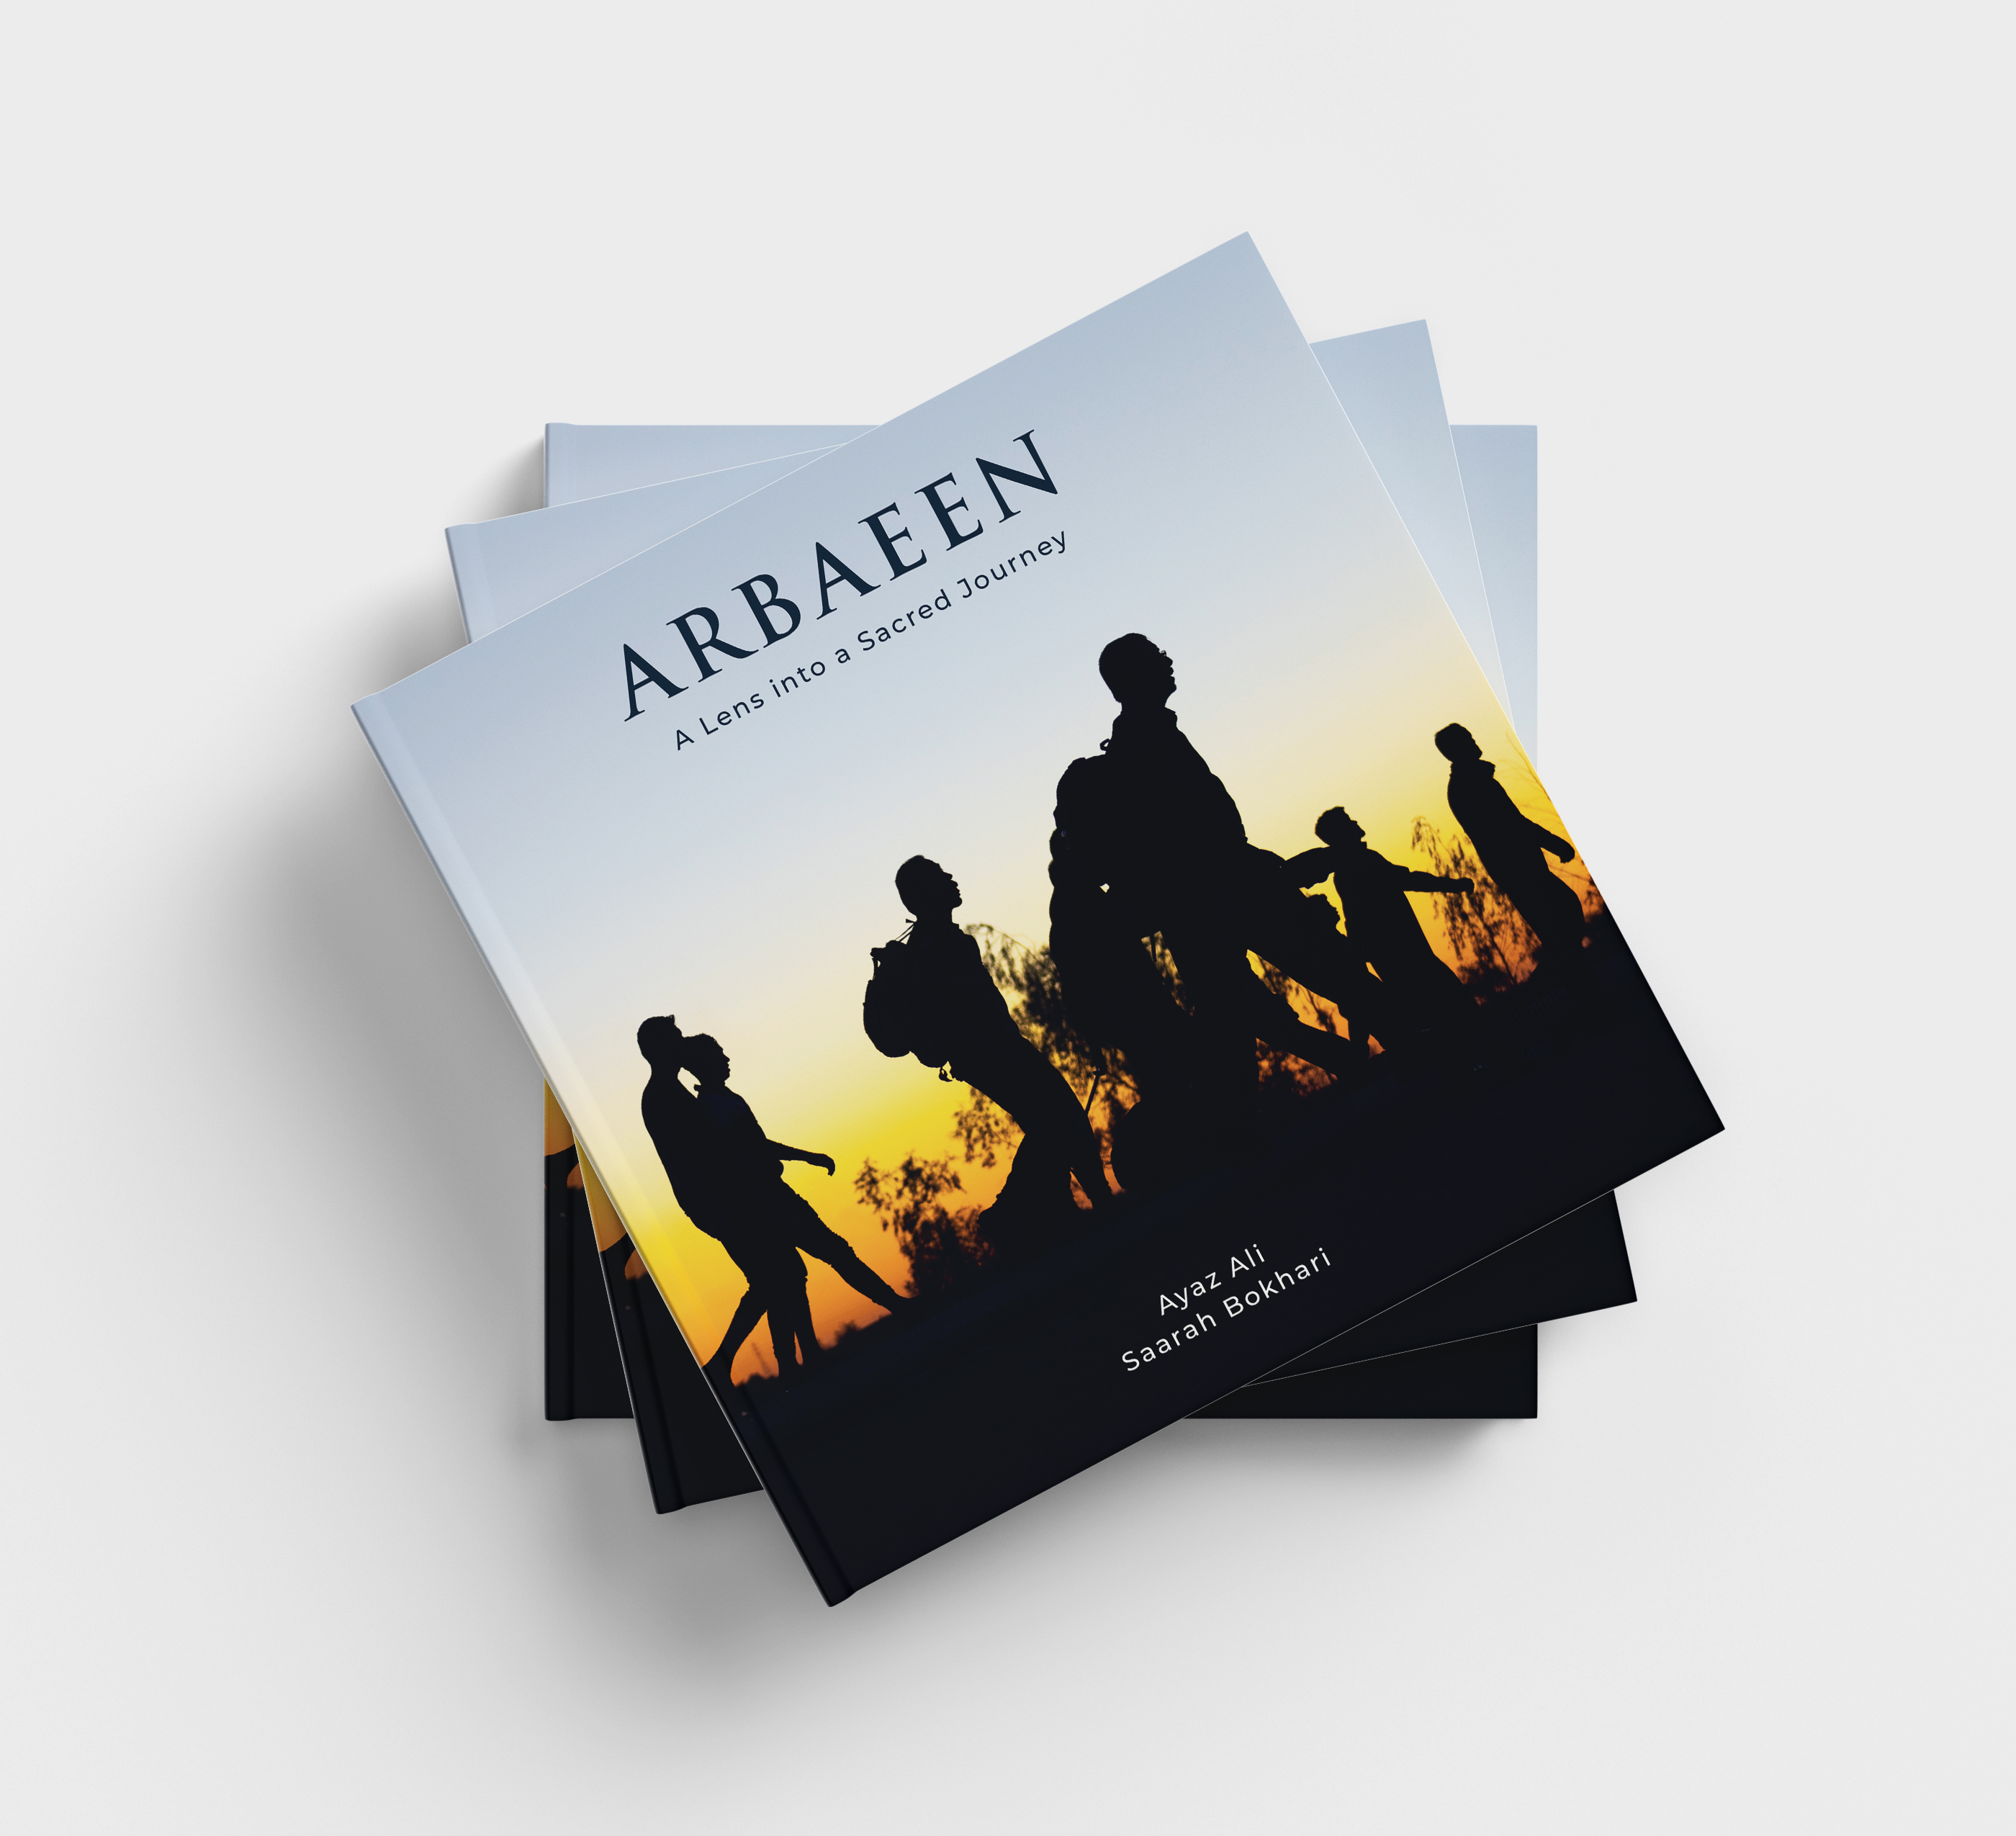 Book Image of 'Arbaeen: A Lens into a Sacred Journey'